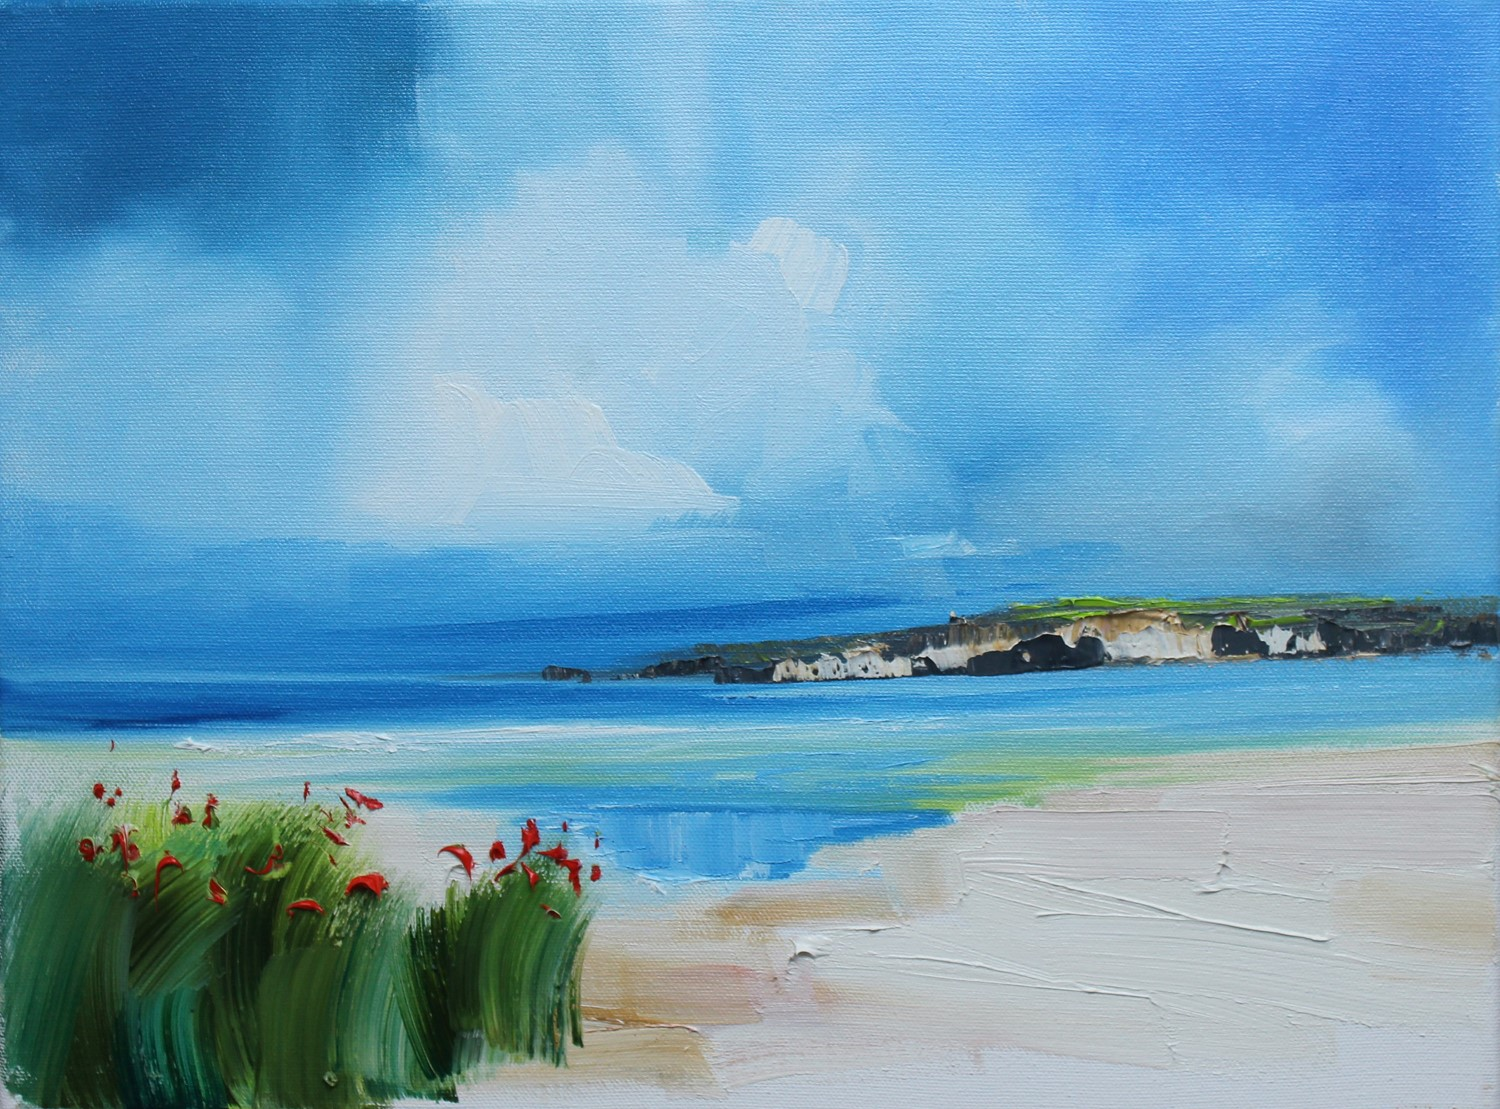 'Flowering poppies on sandy shores' by artist Rosanne Barr